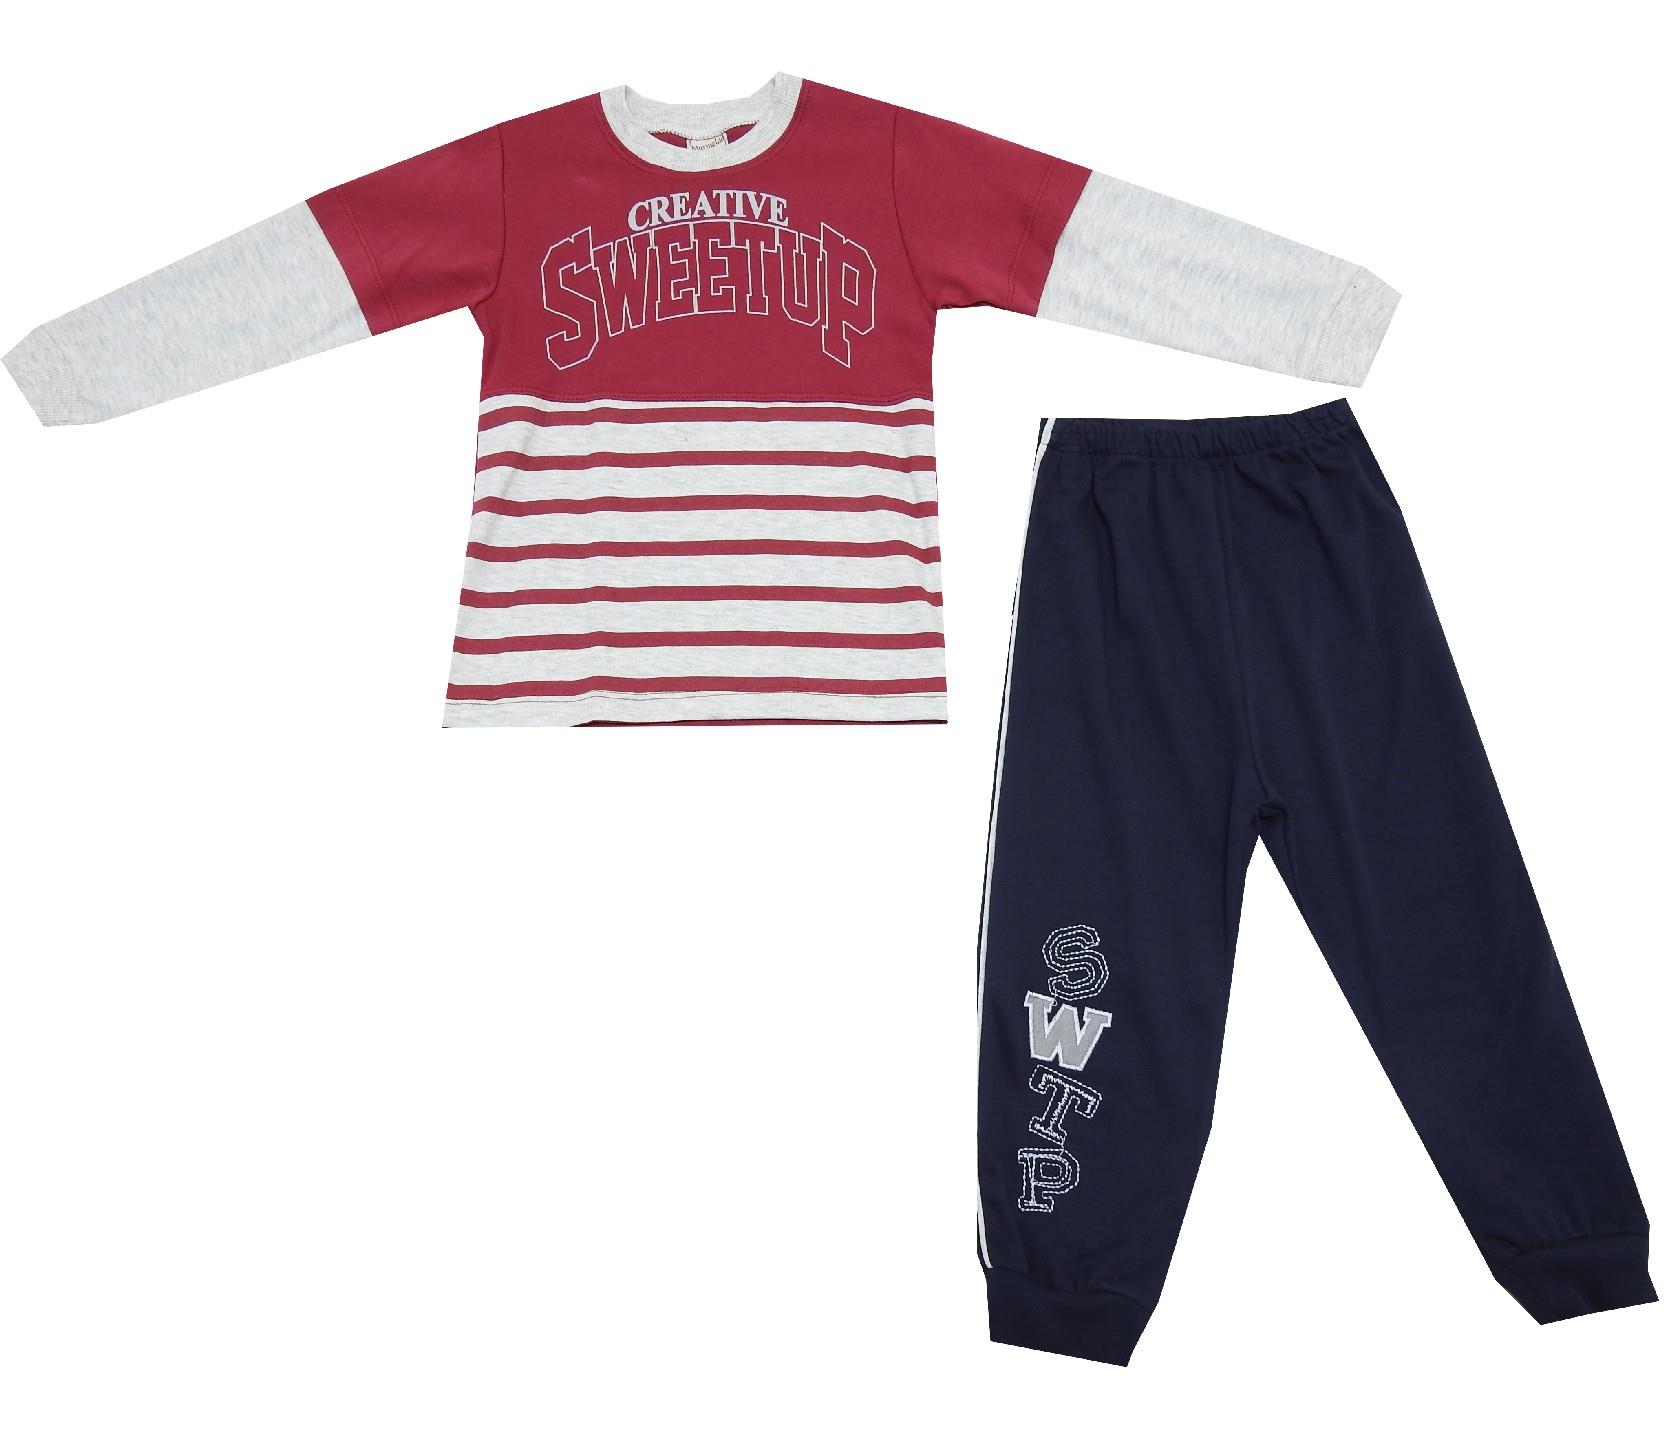 CREATIVE SWEETUP PRINTED DOUBLE SET FOR BOY (2-3-4 AGE)